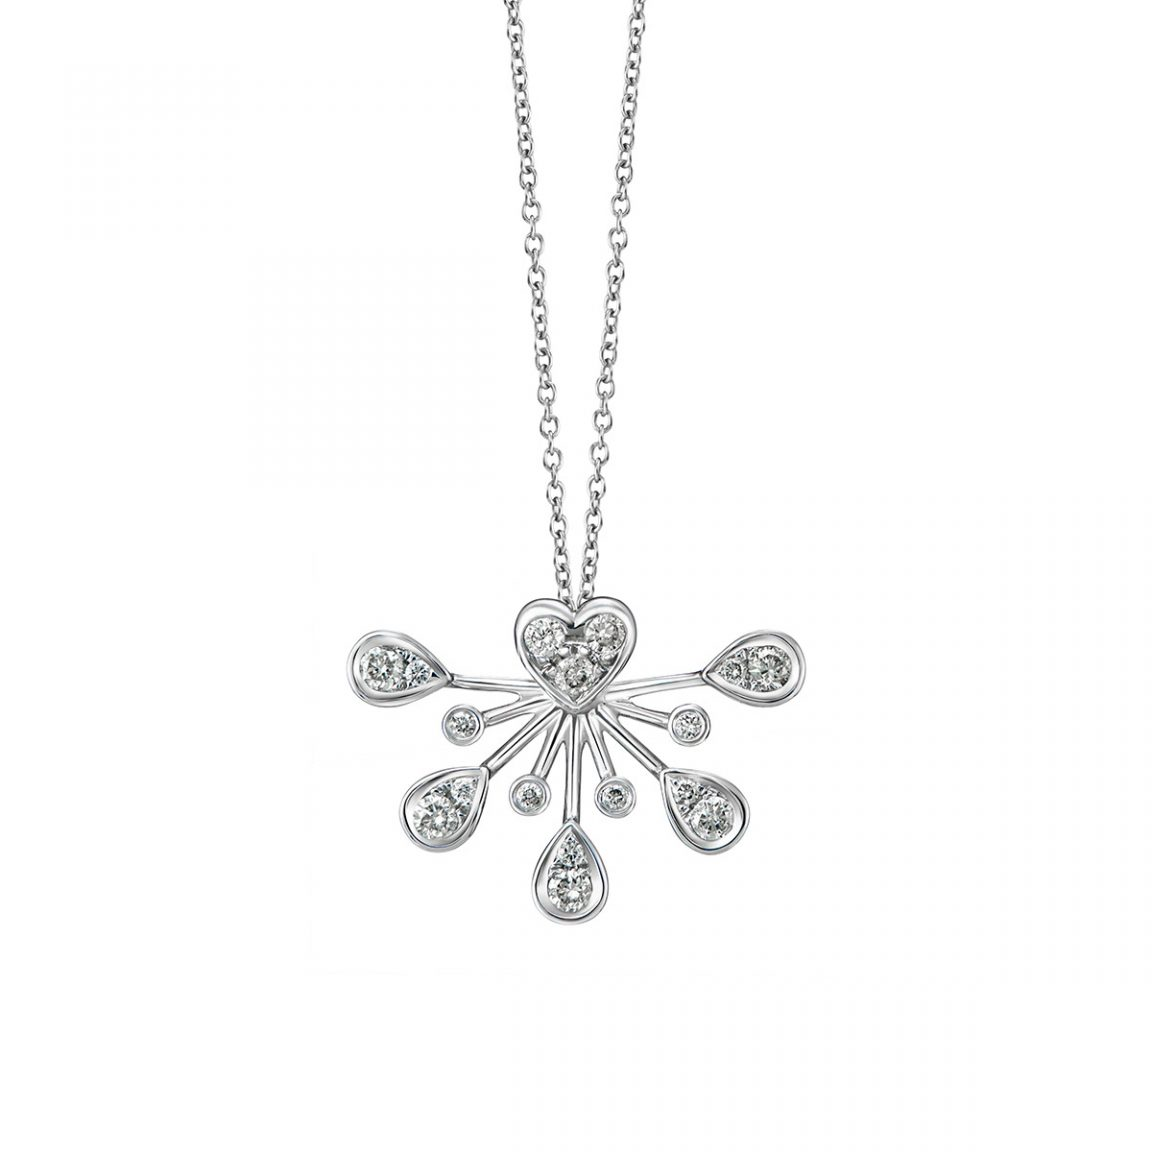 Soleluna ASTRA Starbright Diamond Necklace